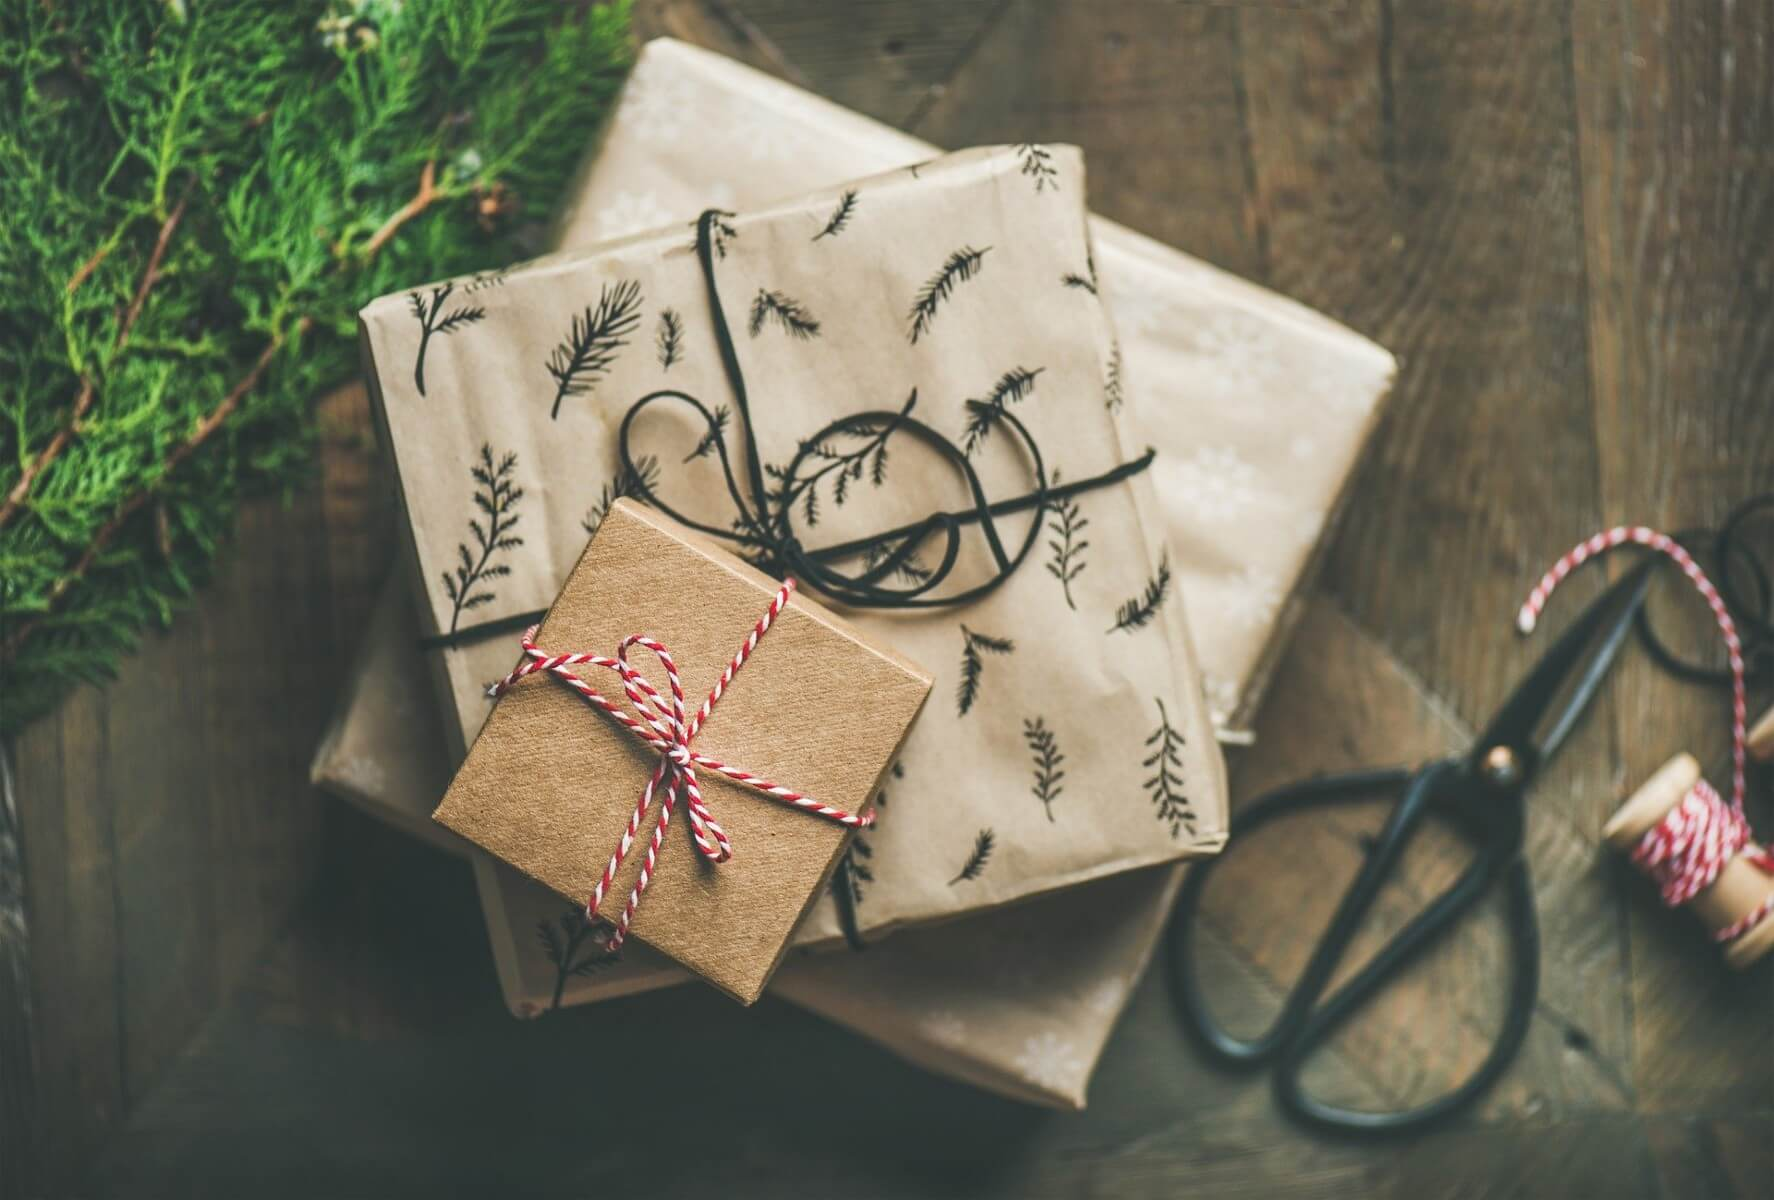 three wrapped gifts with scissors and string next to them